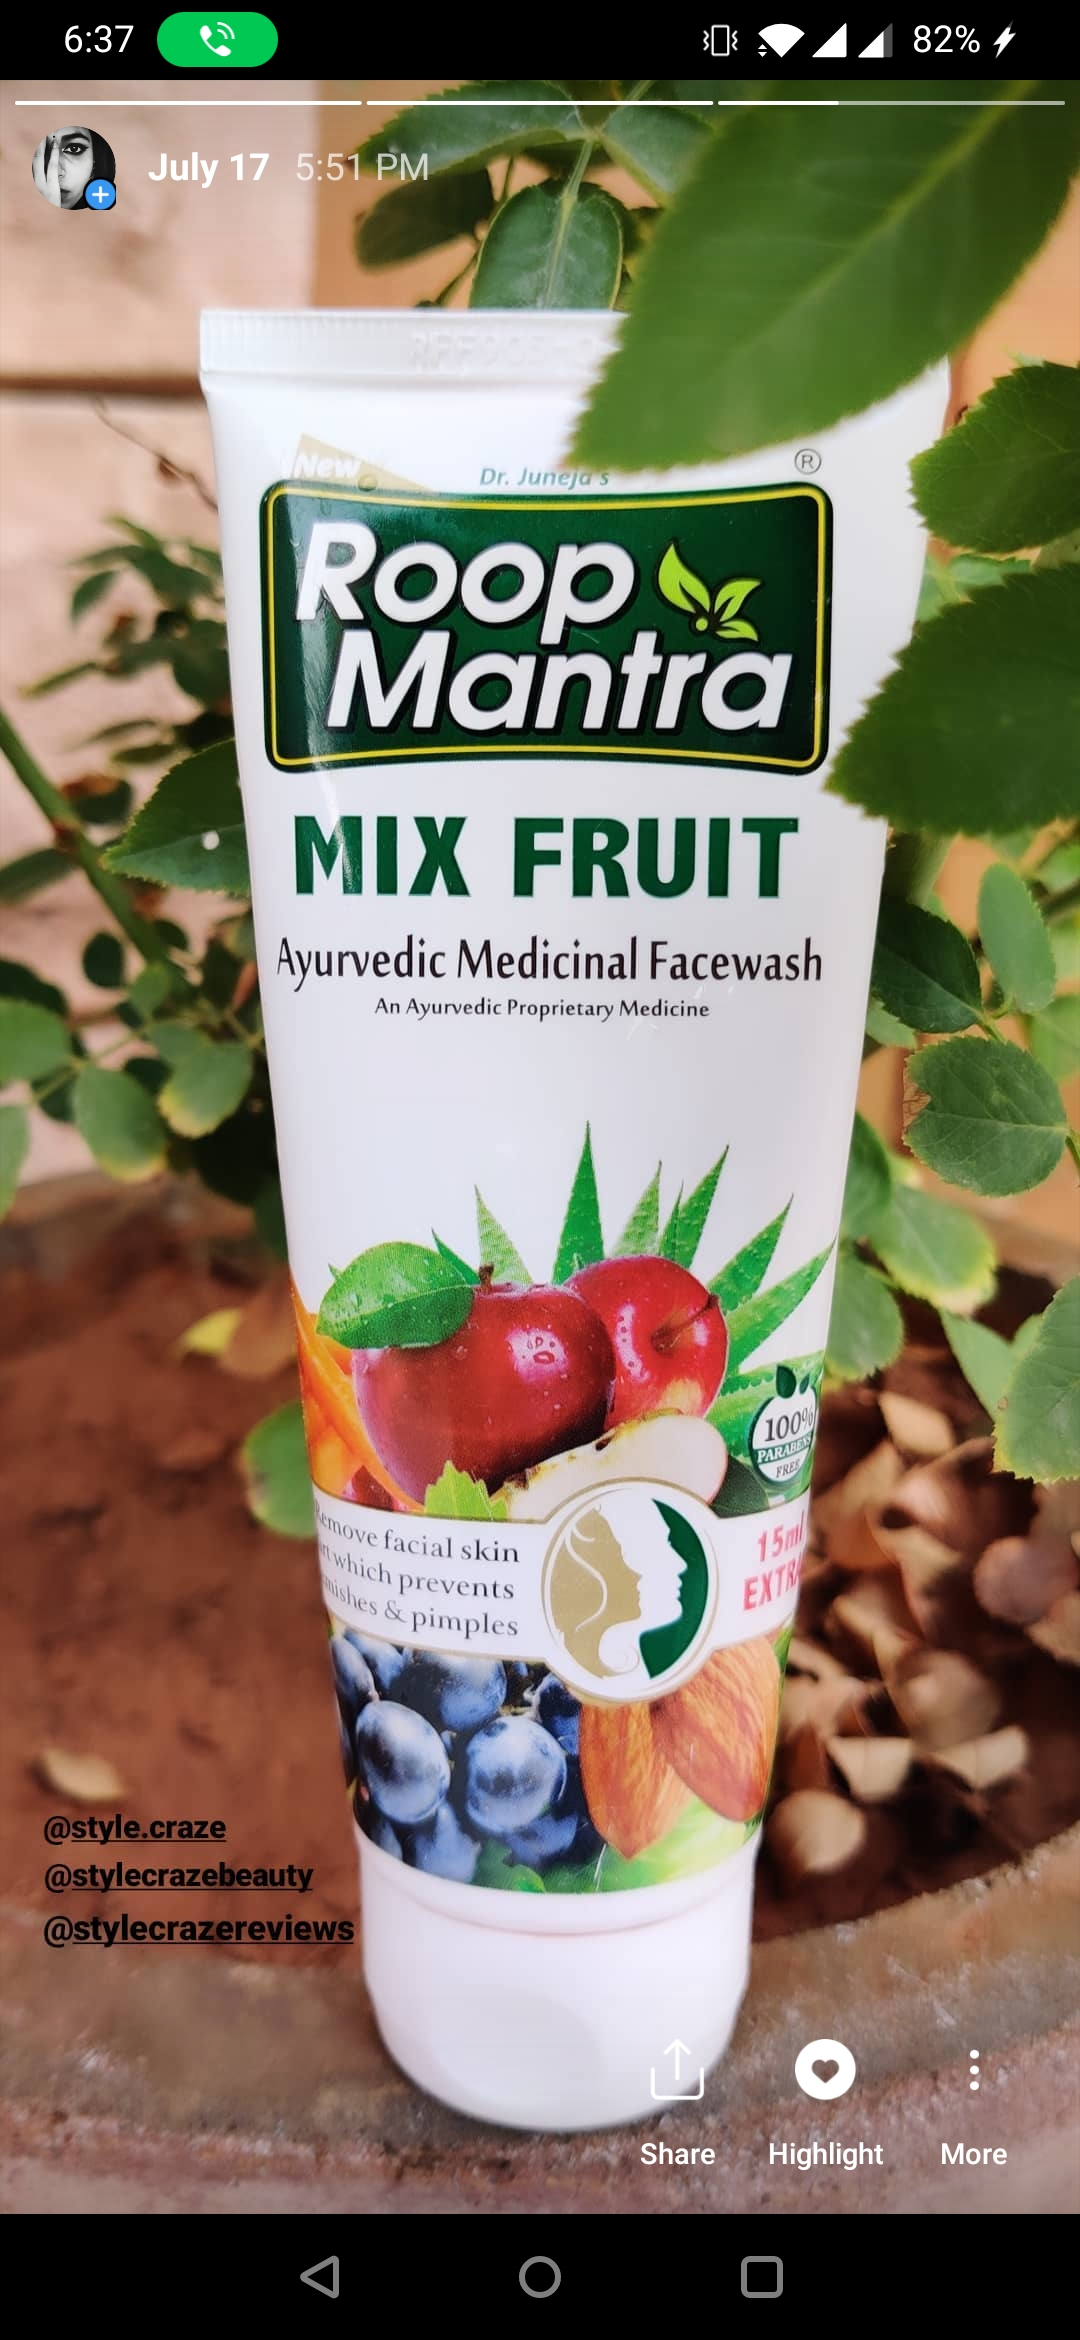 Roop Mantra Mix Fruit Face Wash -Amazing Facewash-By anje